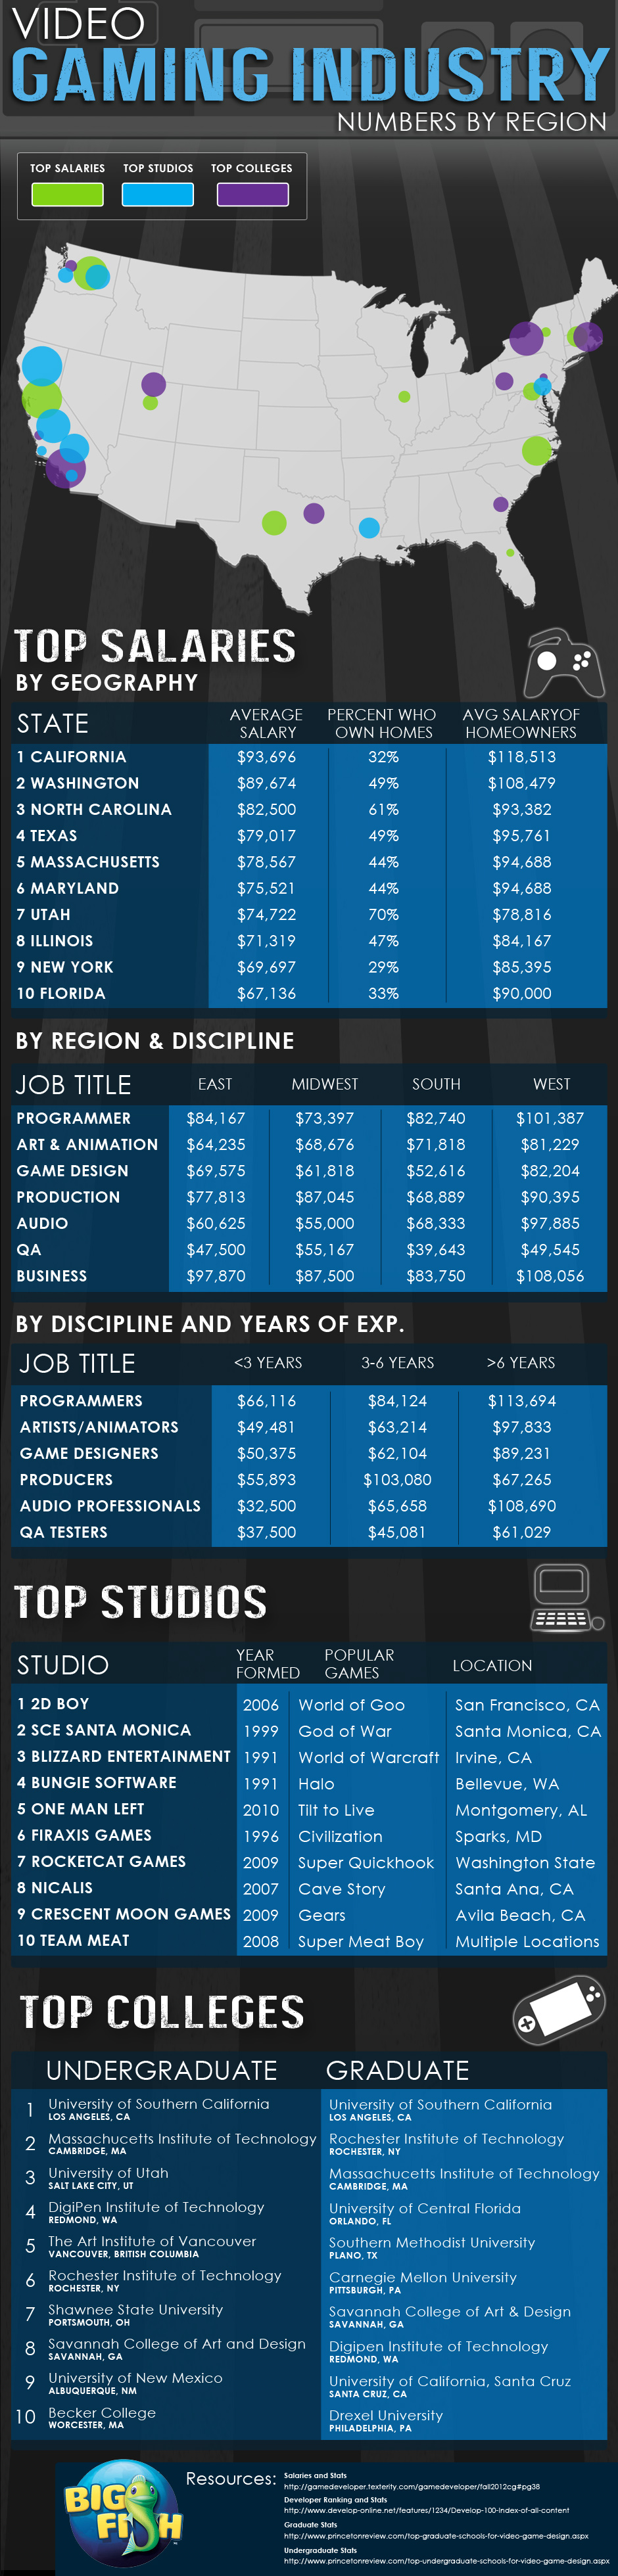 top-salaries-studios--schools-for-the-gaming-industry_50a143f7865c0